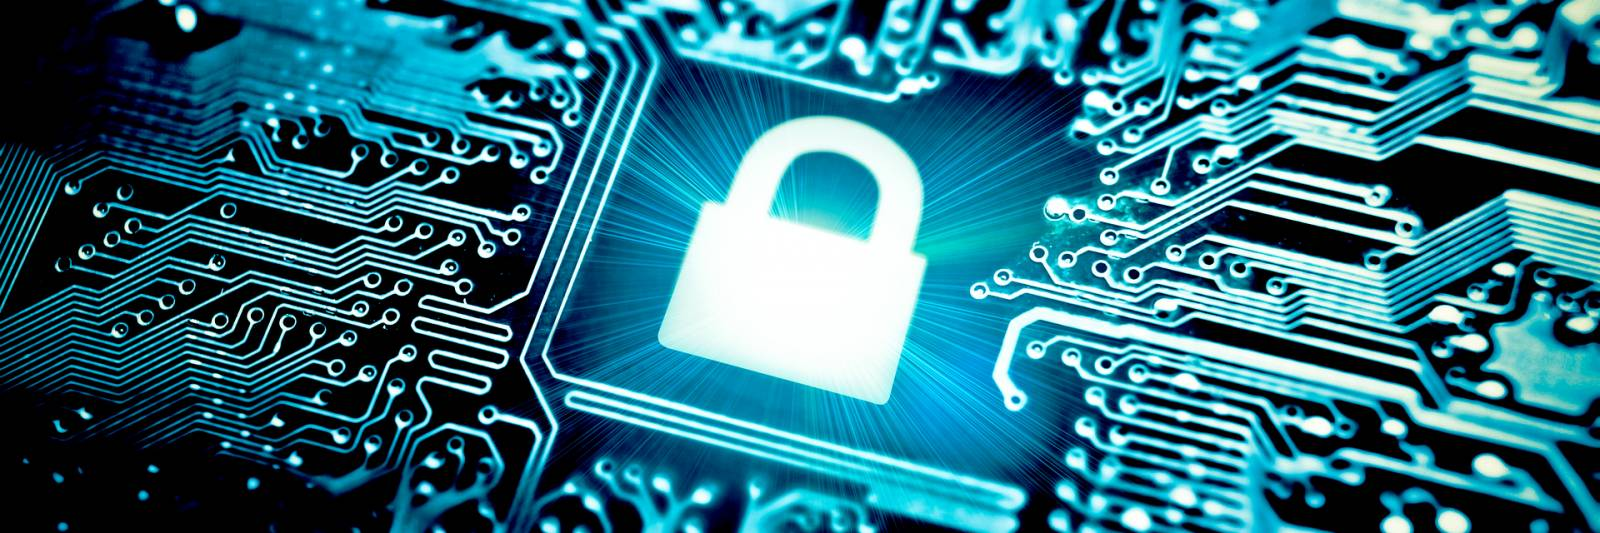 intel joins forces with darpa to help build encryption 'holy